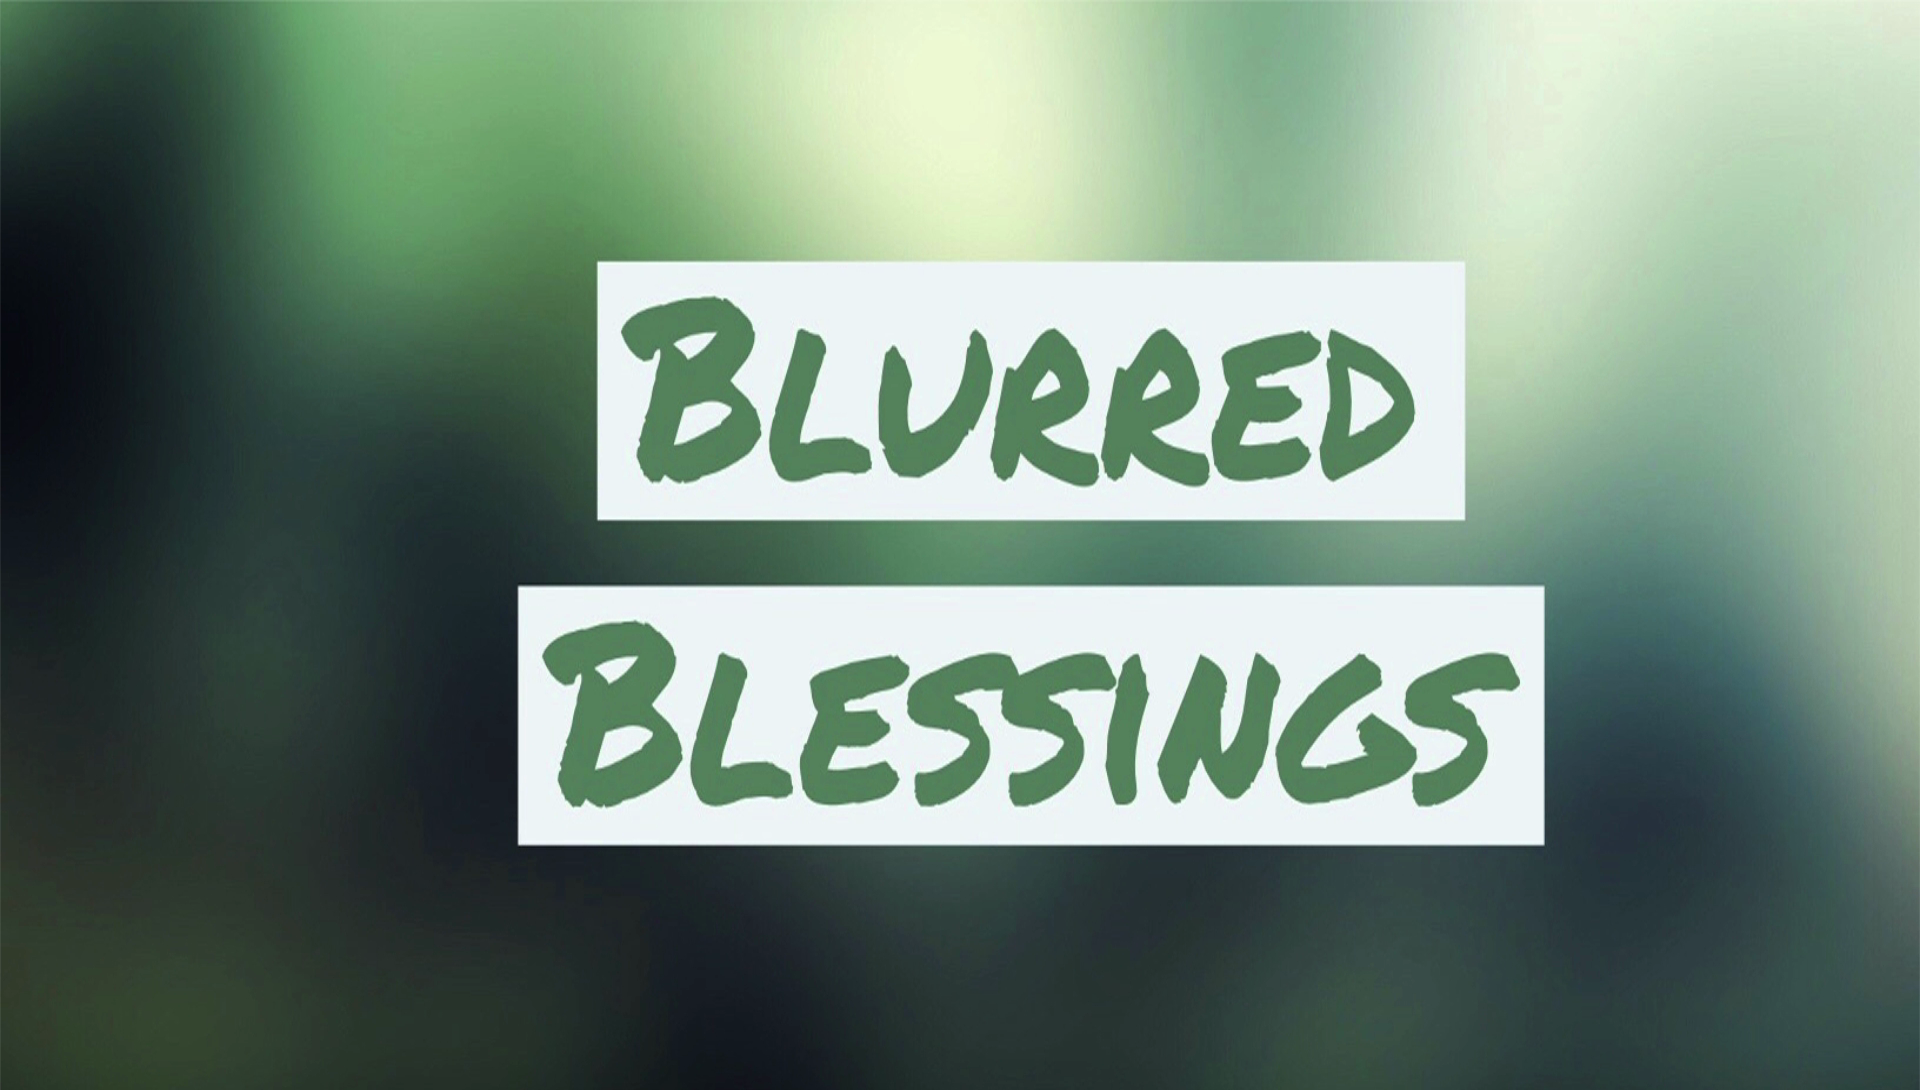 Blurred Blessings